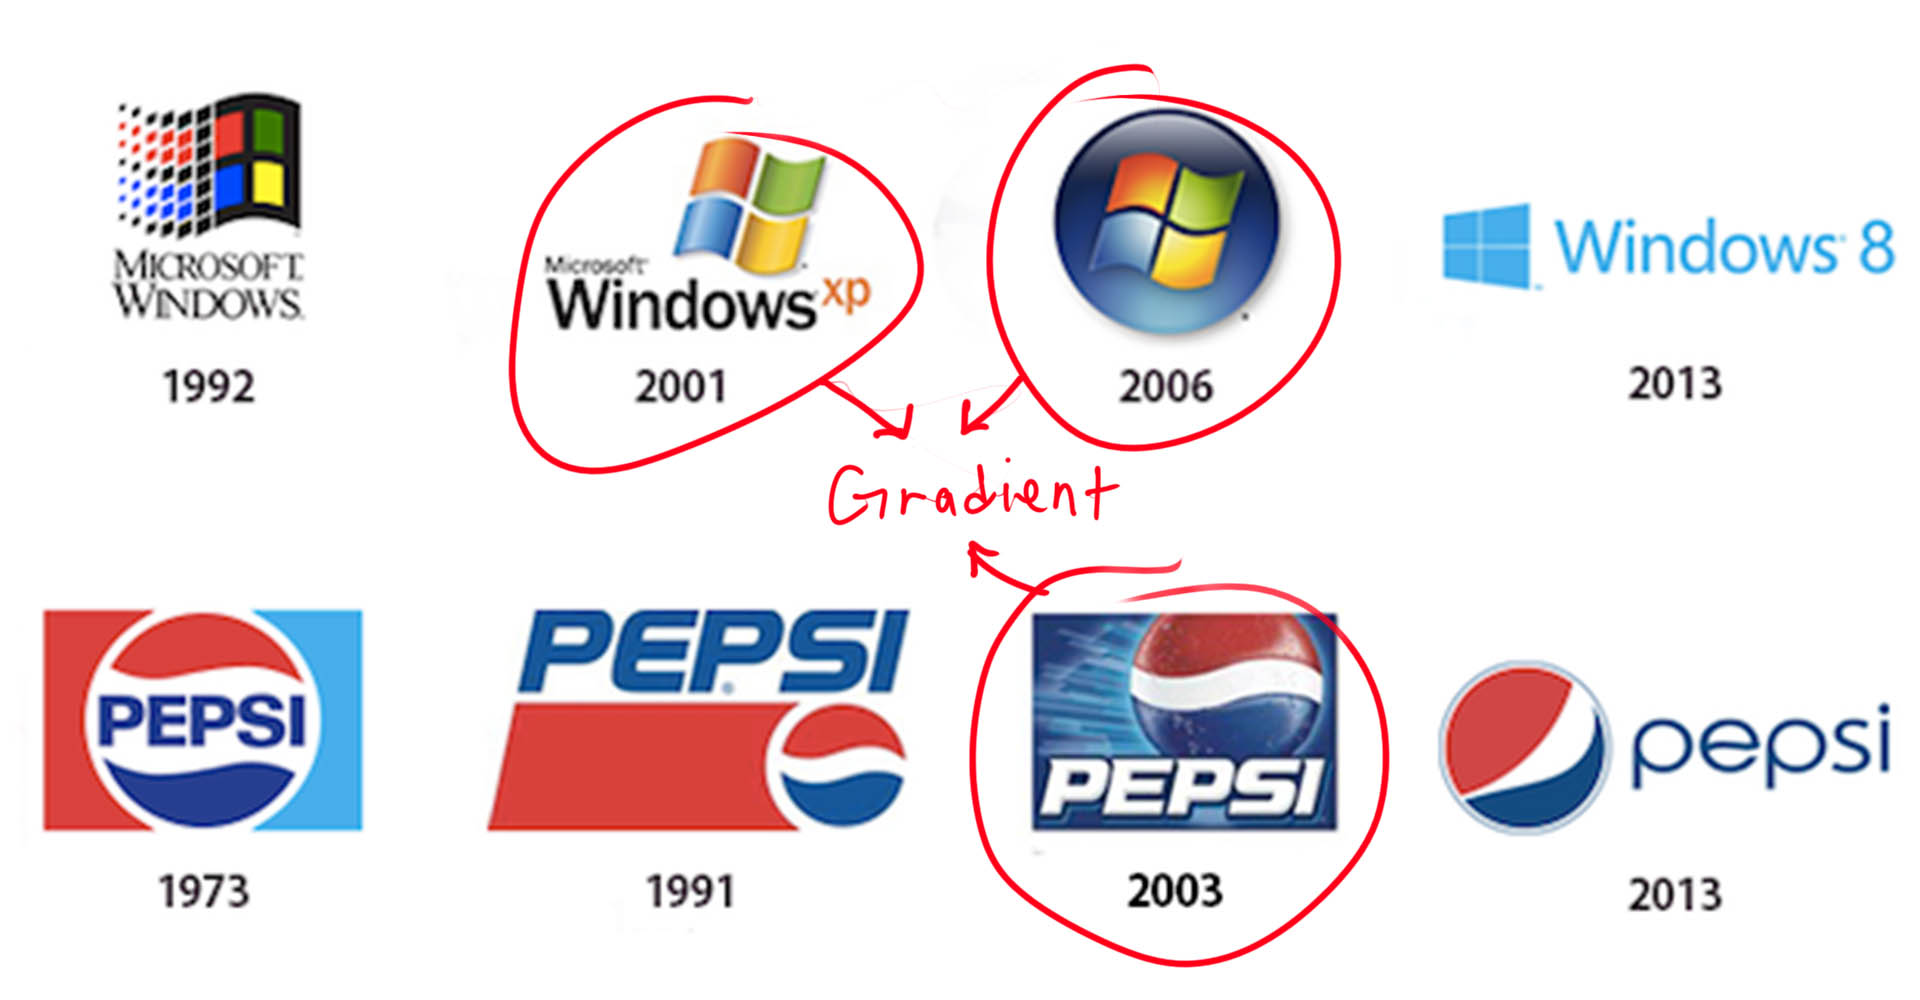 Evolution of Windows and Pepsi